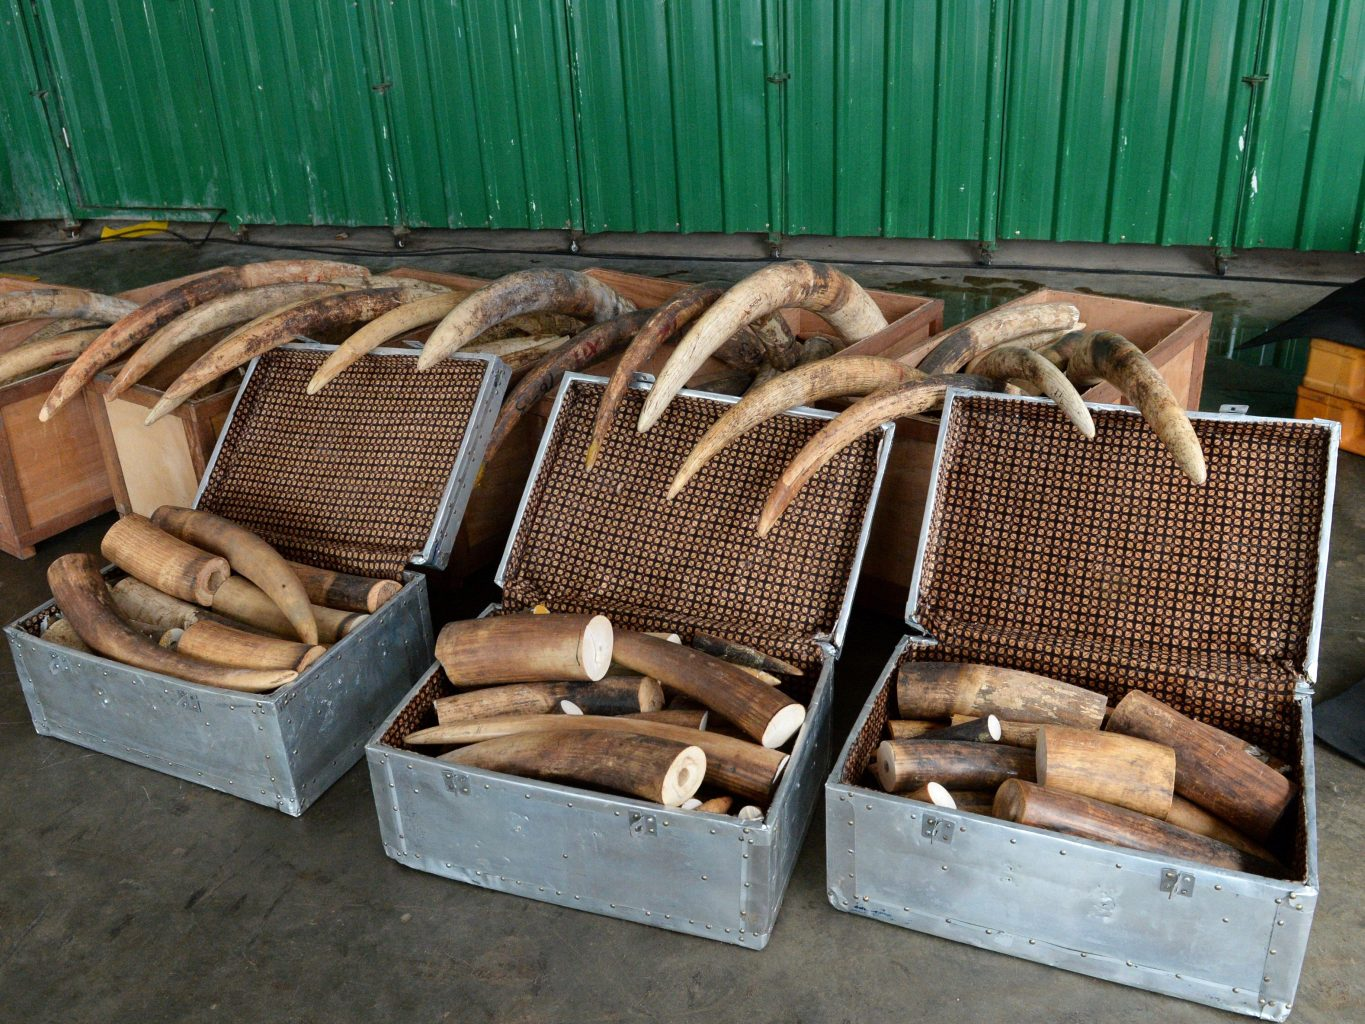 Singapore to ban domestic Ivory trade from 2021